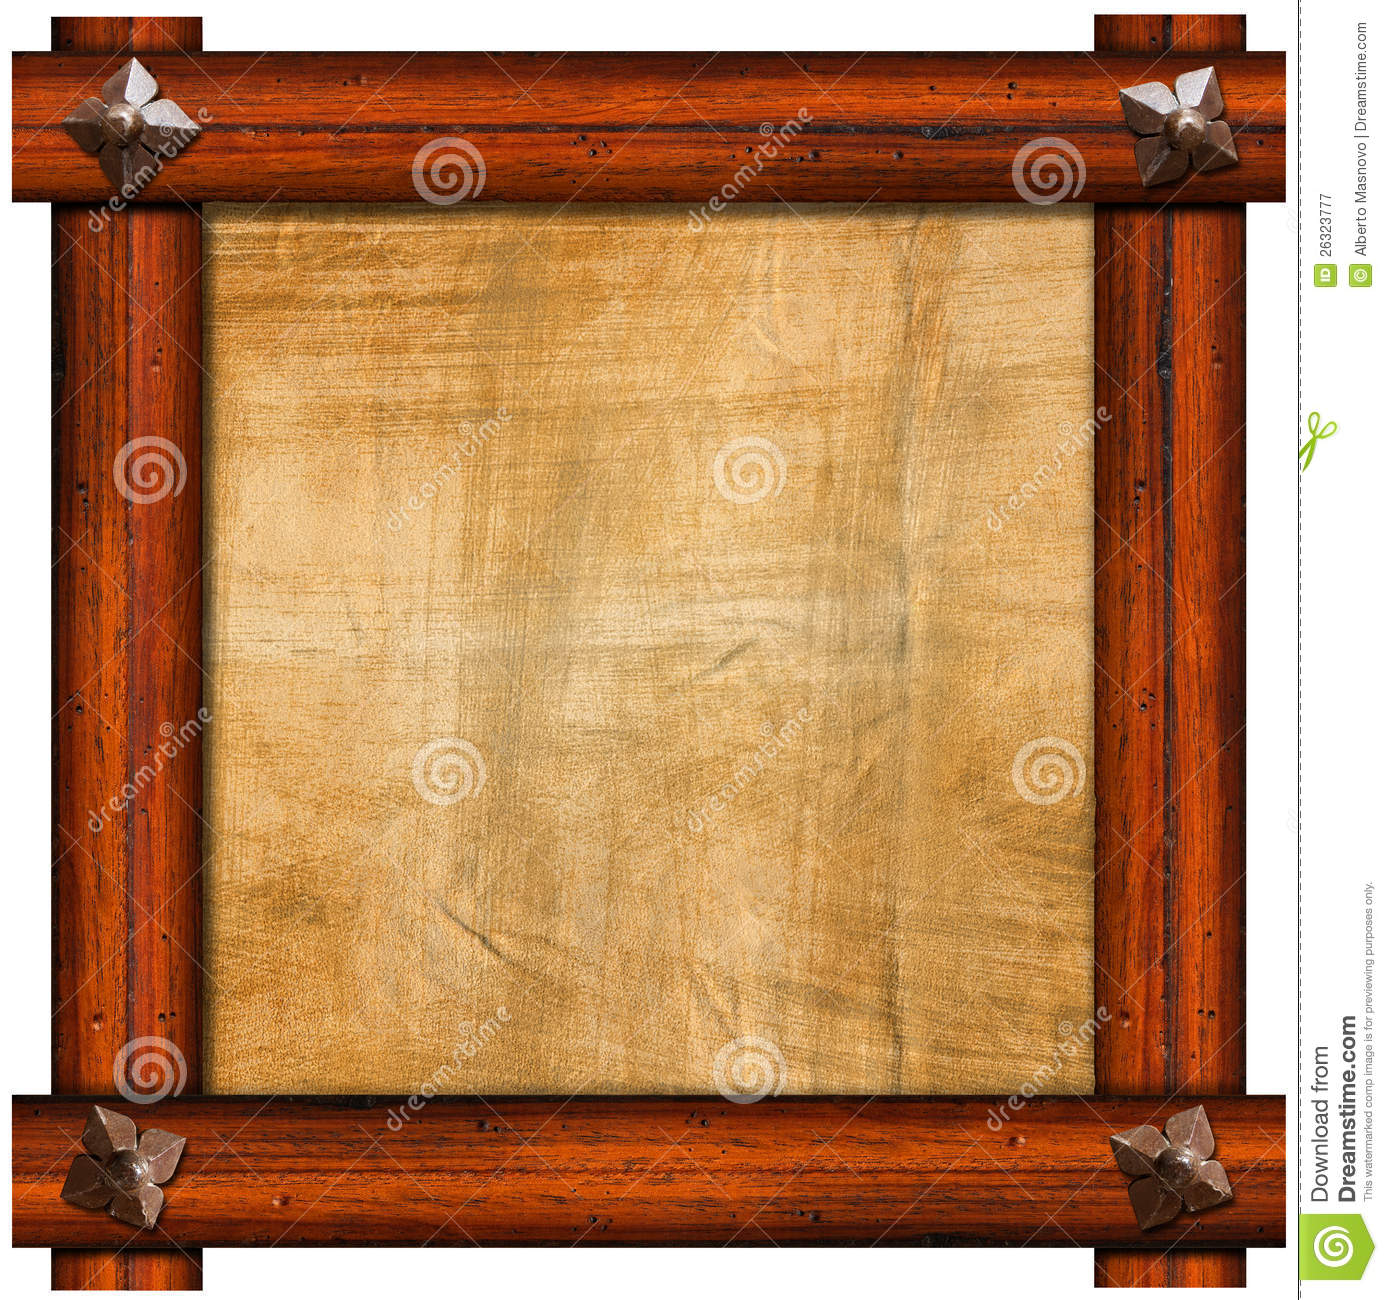 Vintage Old Wooden Frame Royalty Free Stock Photography